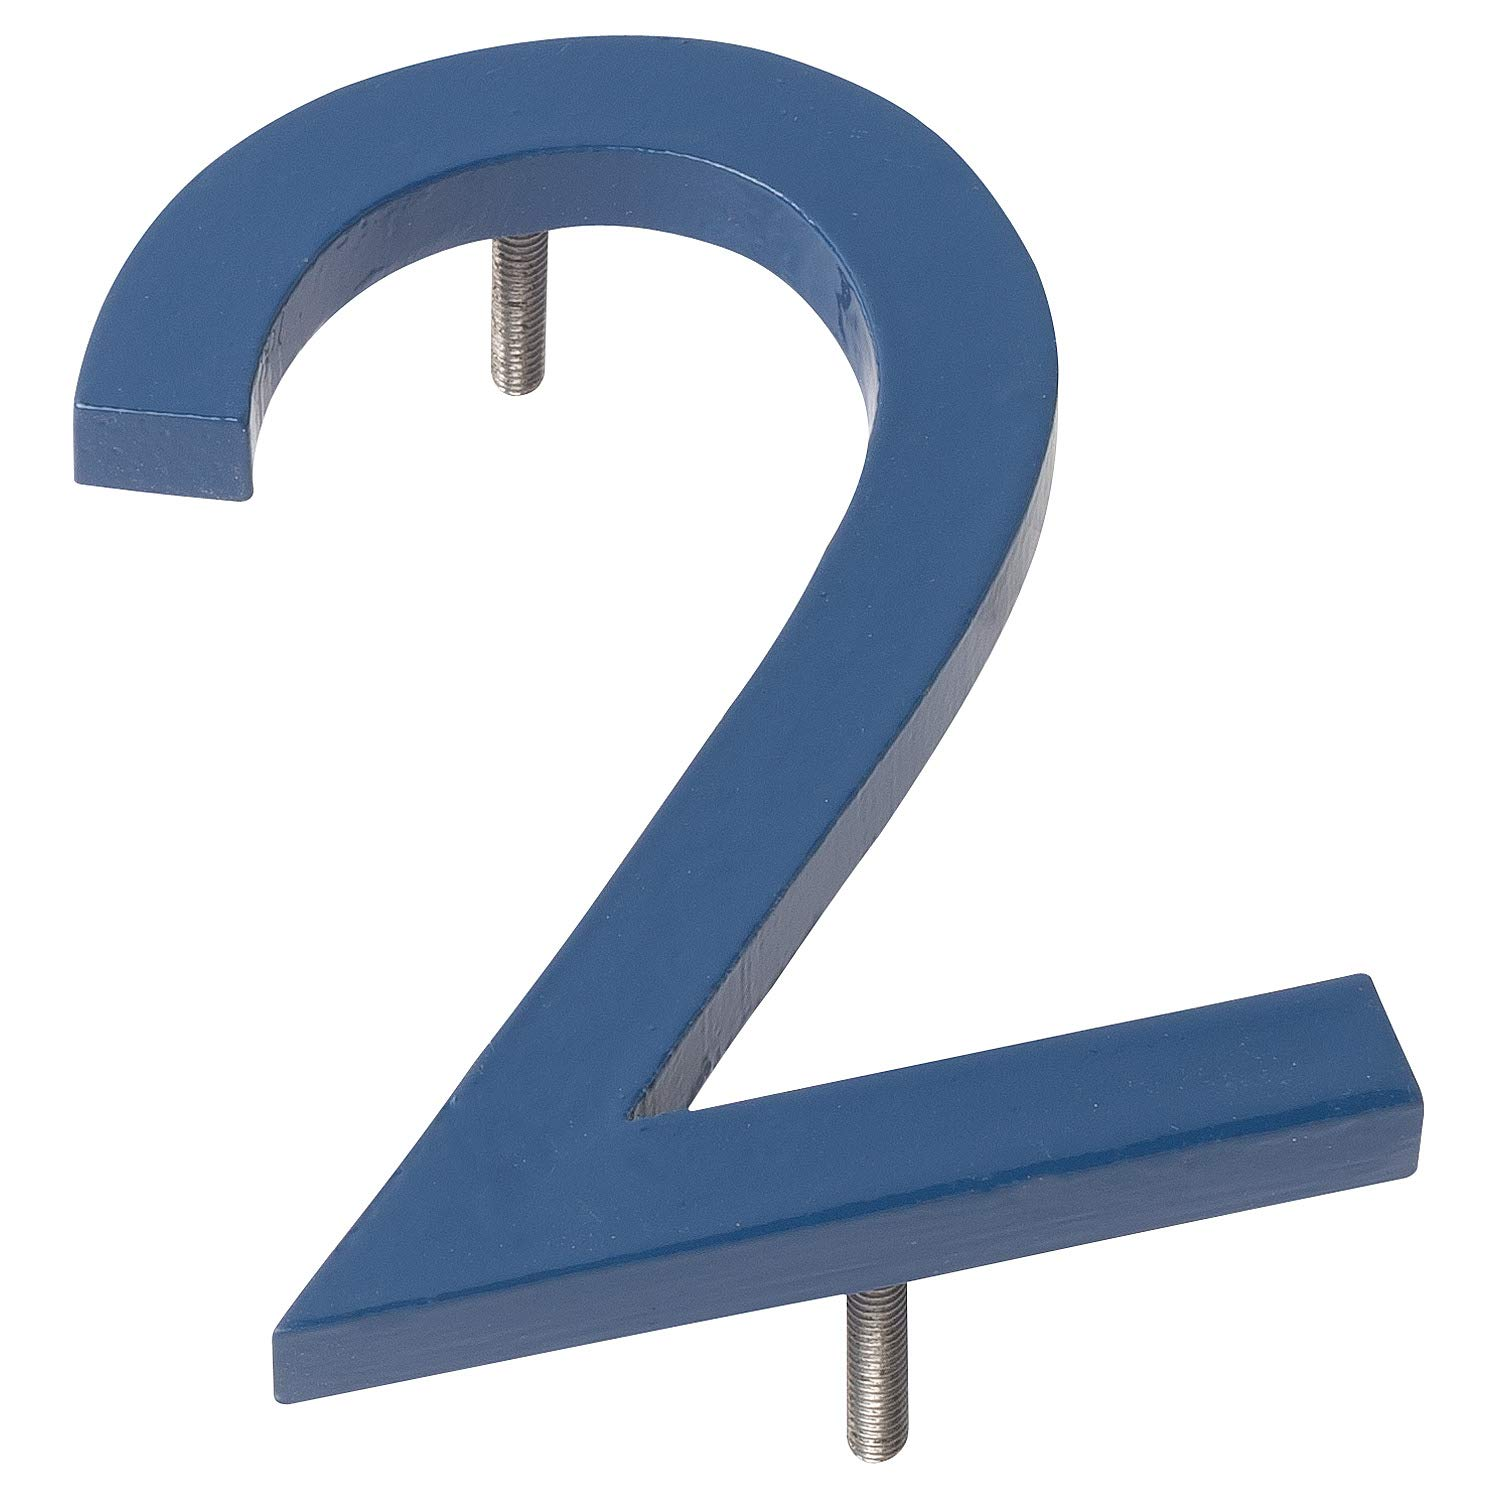 Montague Metal Products MHN-08-2-F-SB1 Floating House Number, 8' x 5.75' x 0.375' Sea Blue